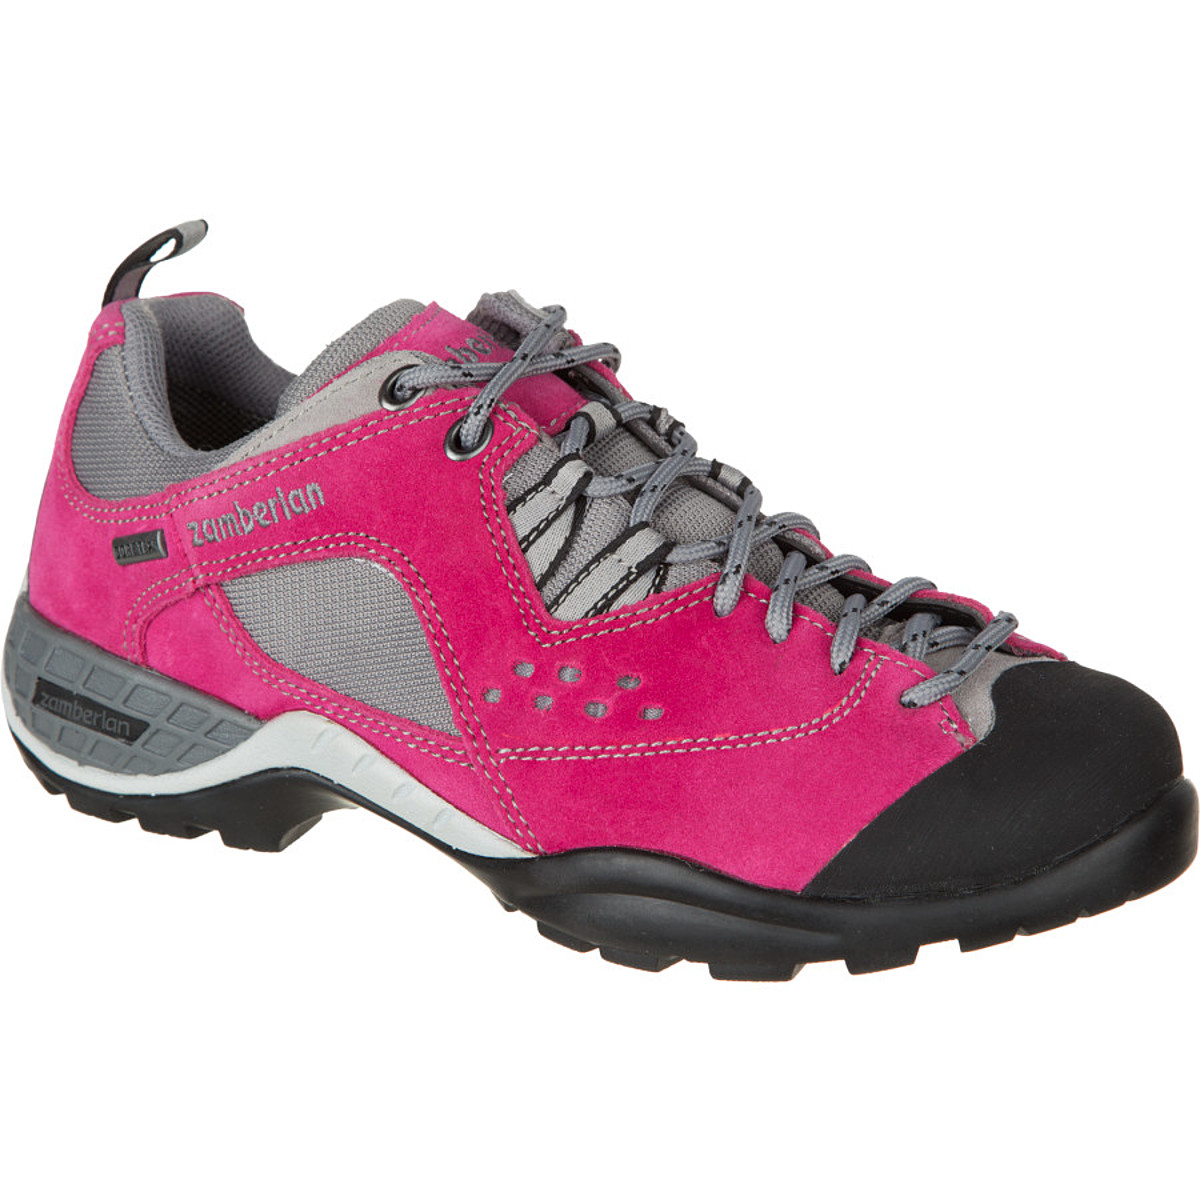 photo: Zamberlan Women's 107 Tucano GT RR Approach Shoe approach shoe